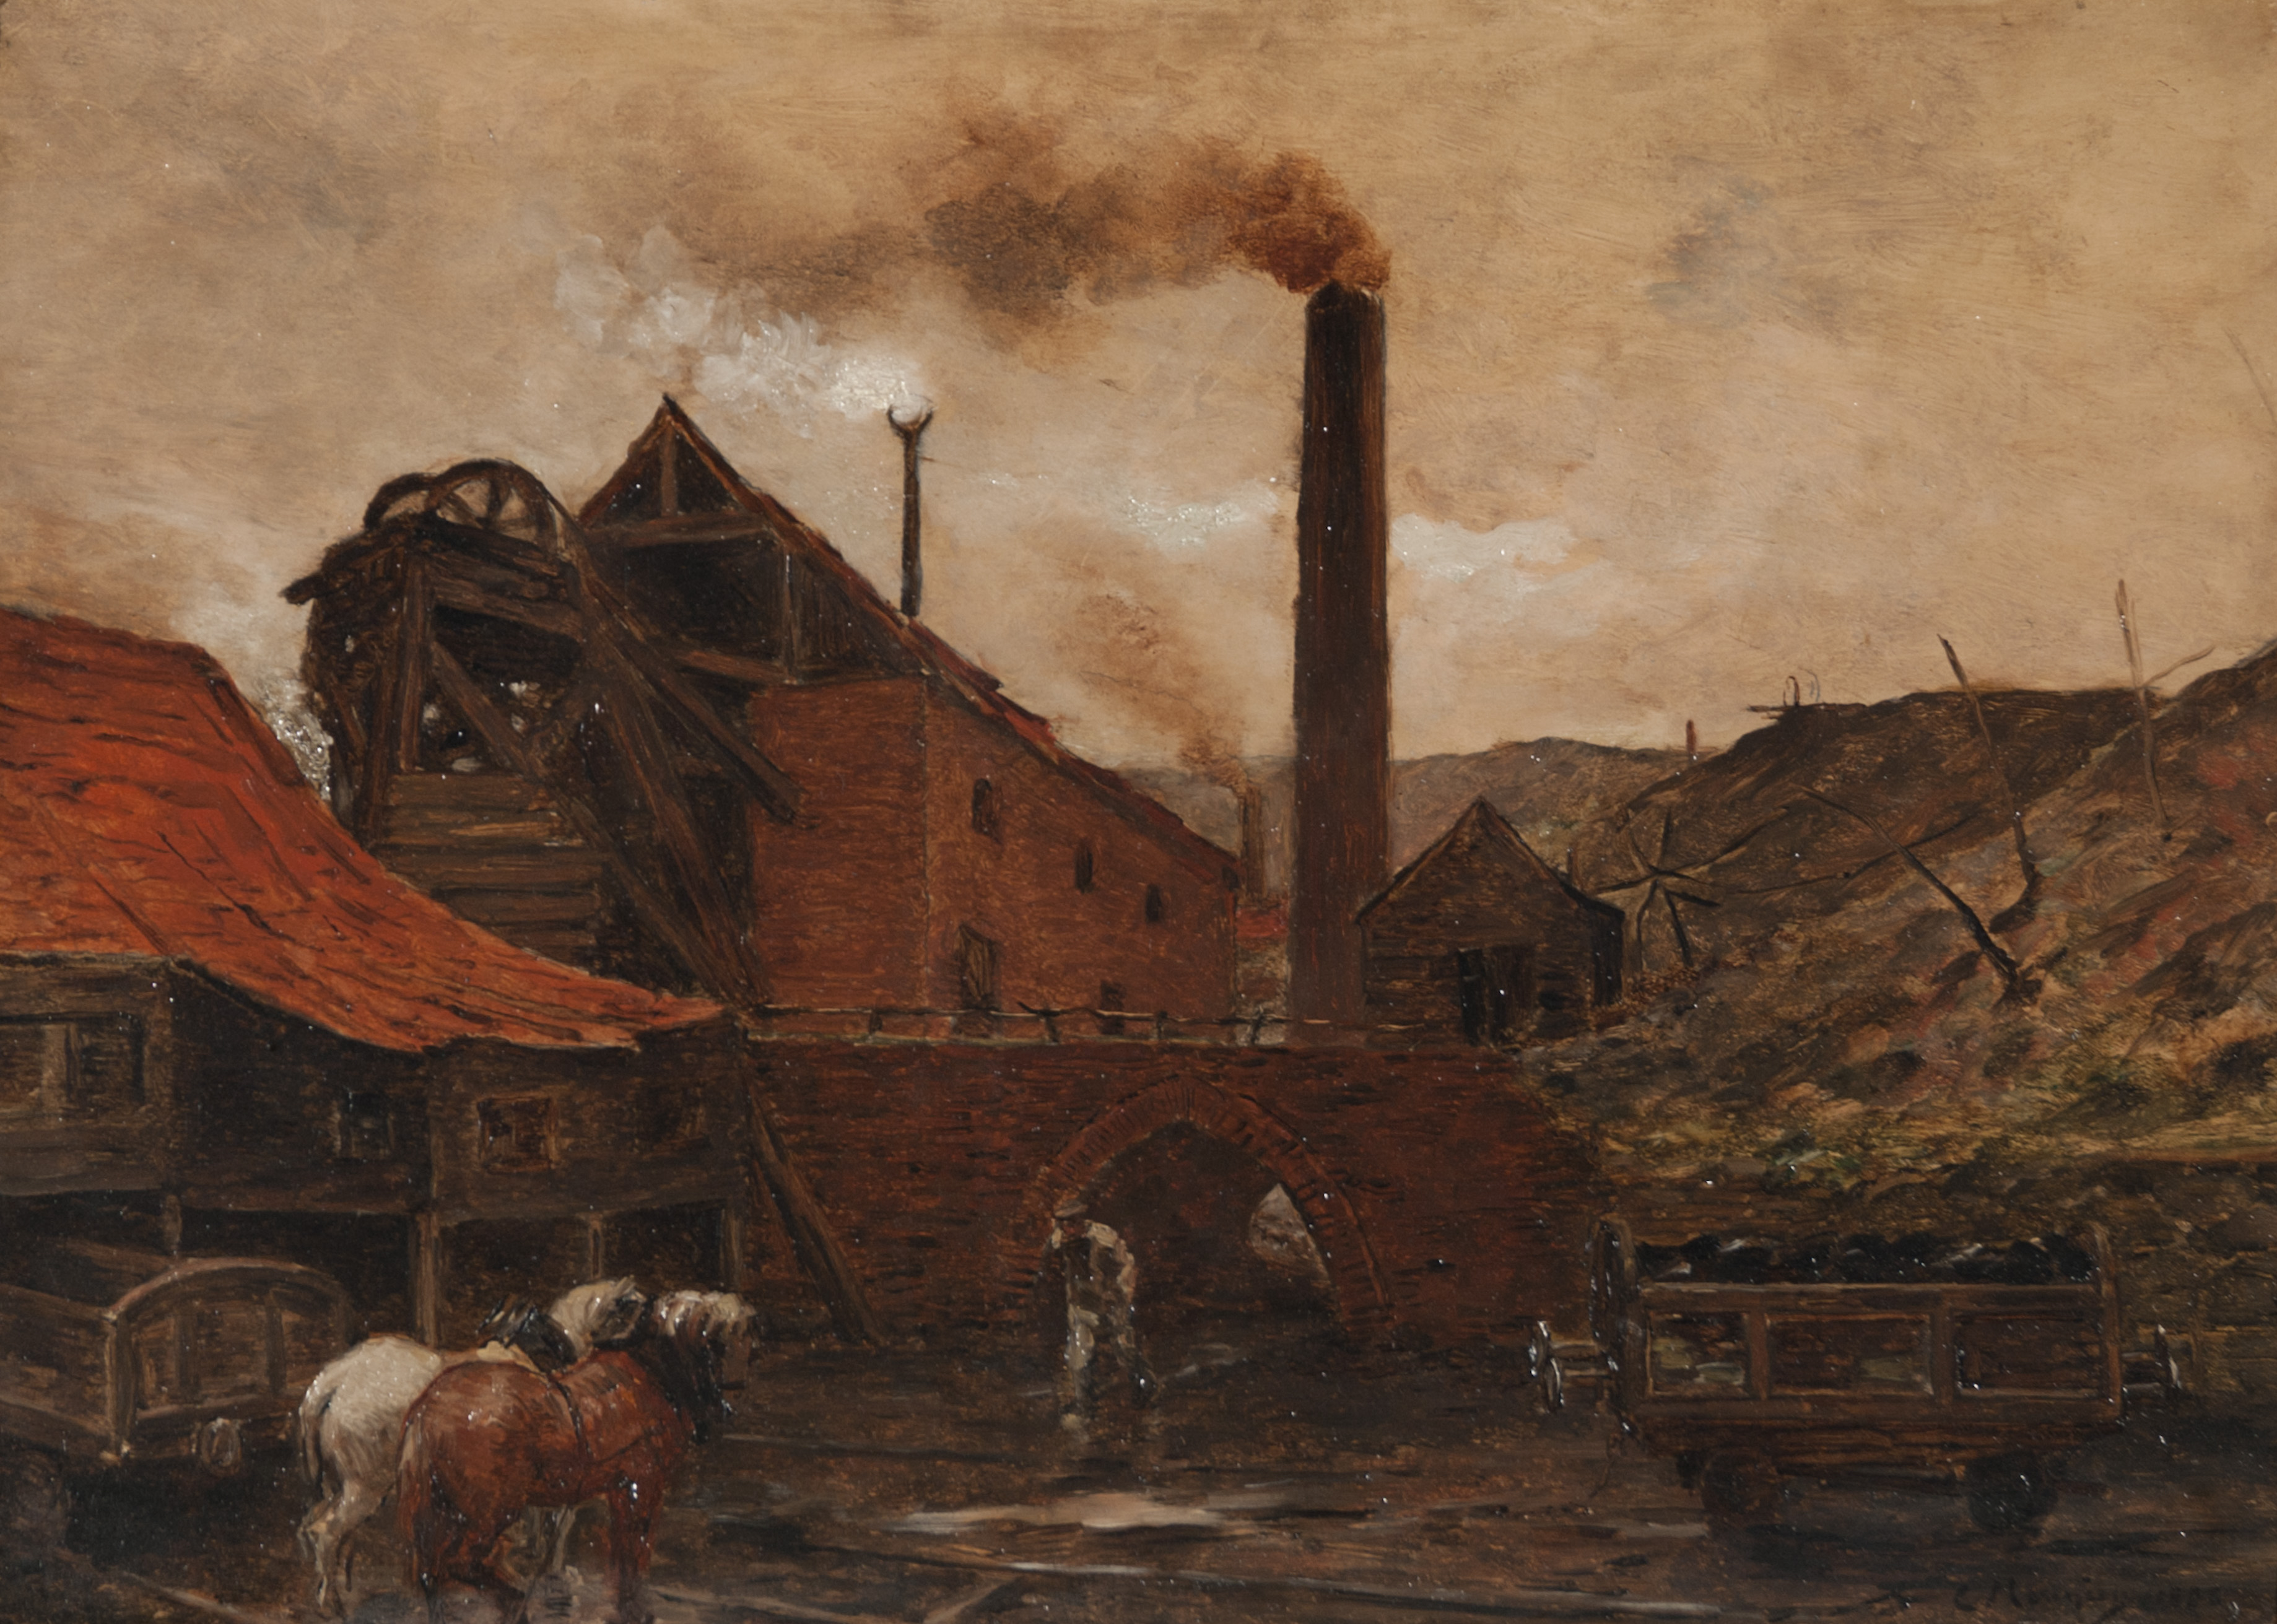 Constantin Meunier, Landscape with Factory, 1886, Oil on panel. Snite Museum of Art, University of Notre Dame. Gift of John D. Reilly '63, '64 B.S., 2013.039.001.